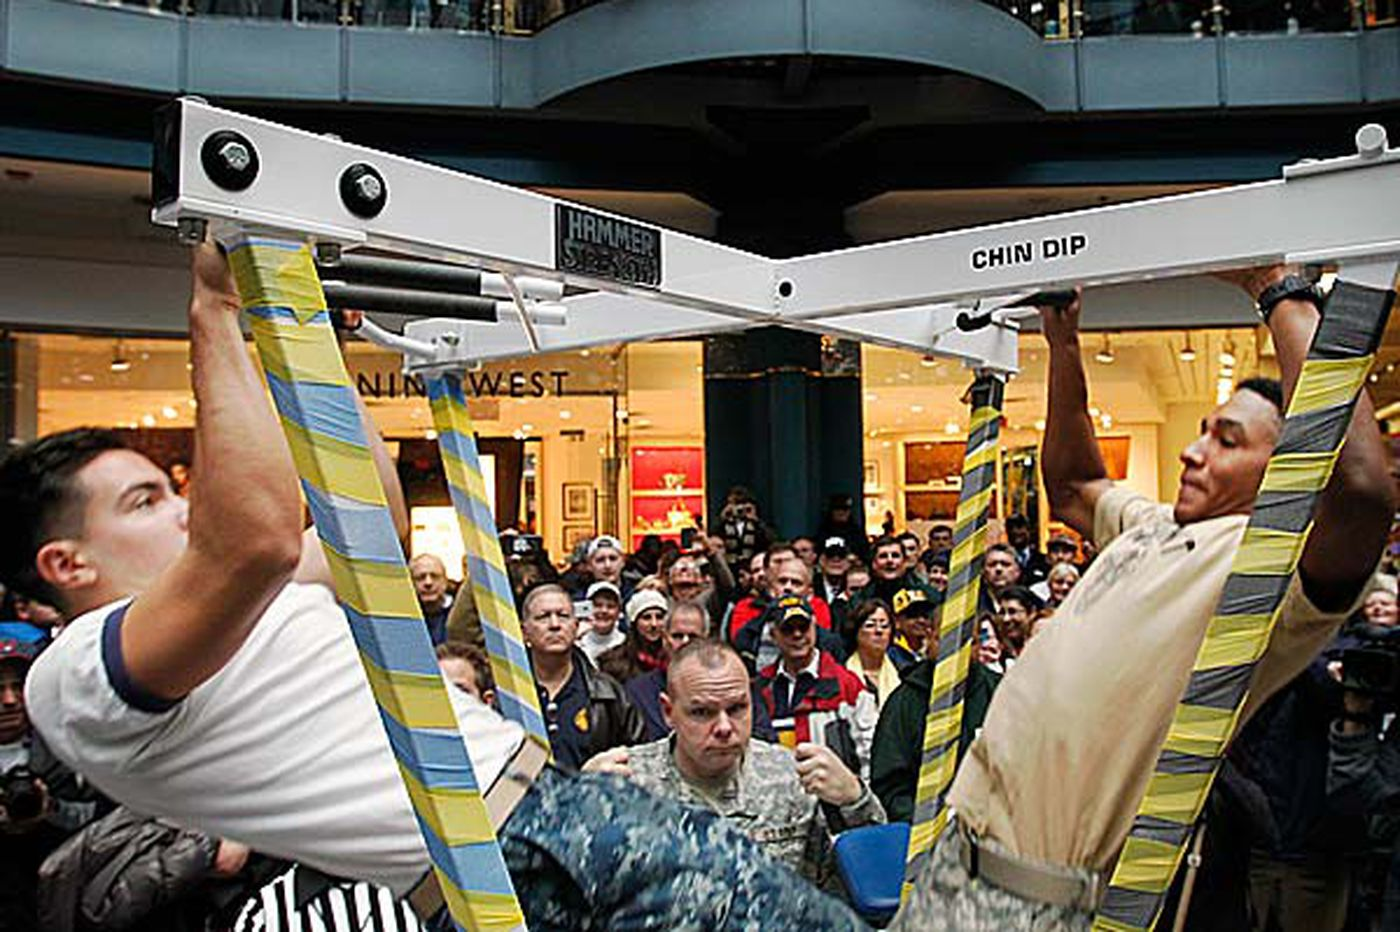 Army-Navy game, an unrivaled rivalry